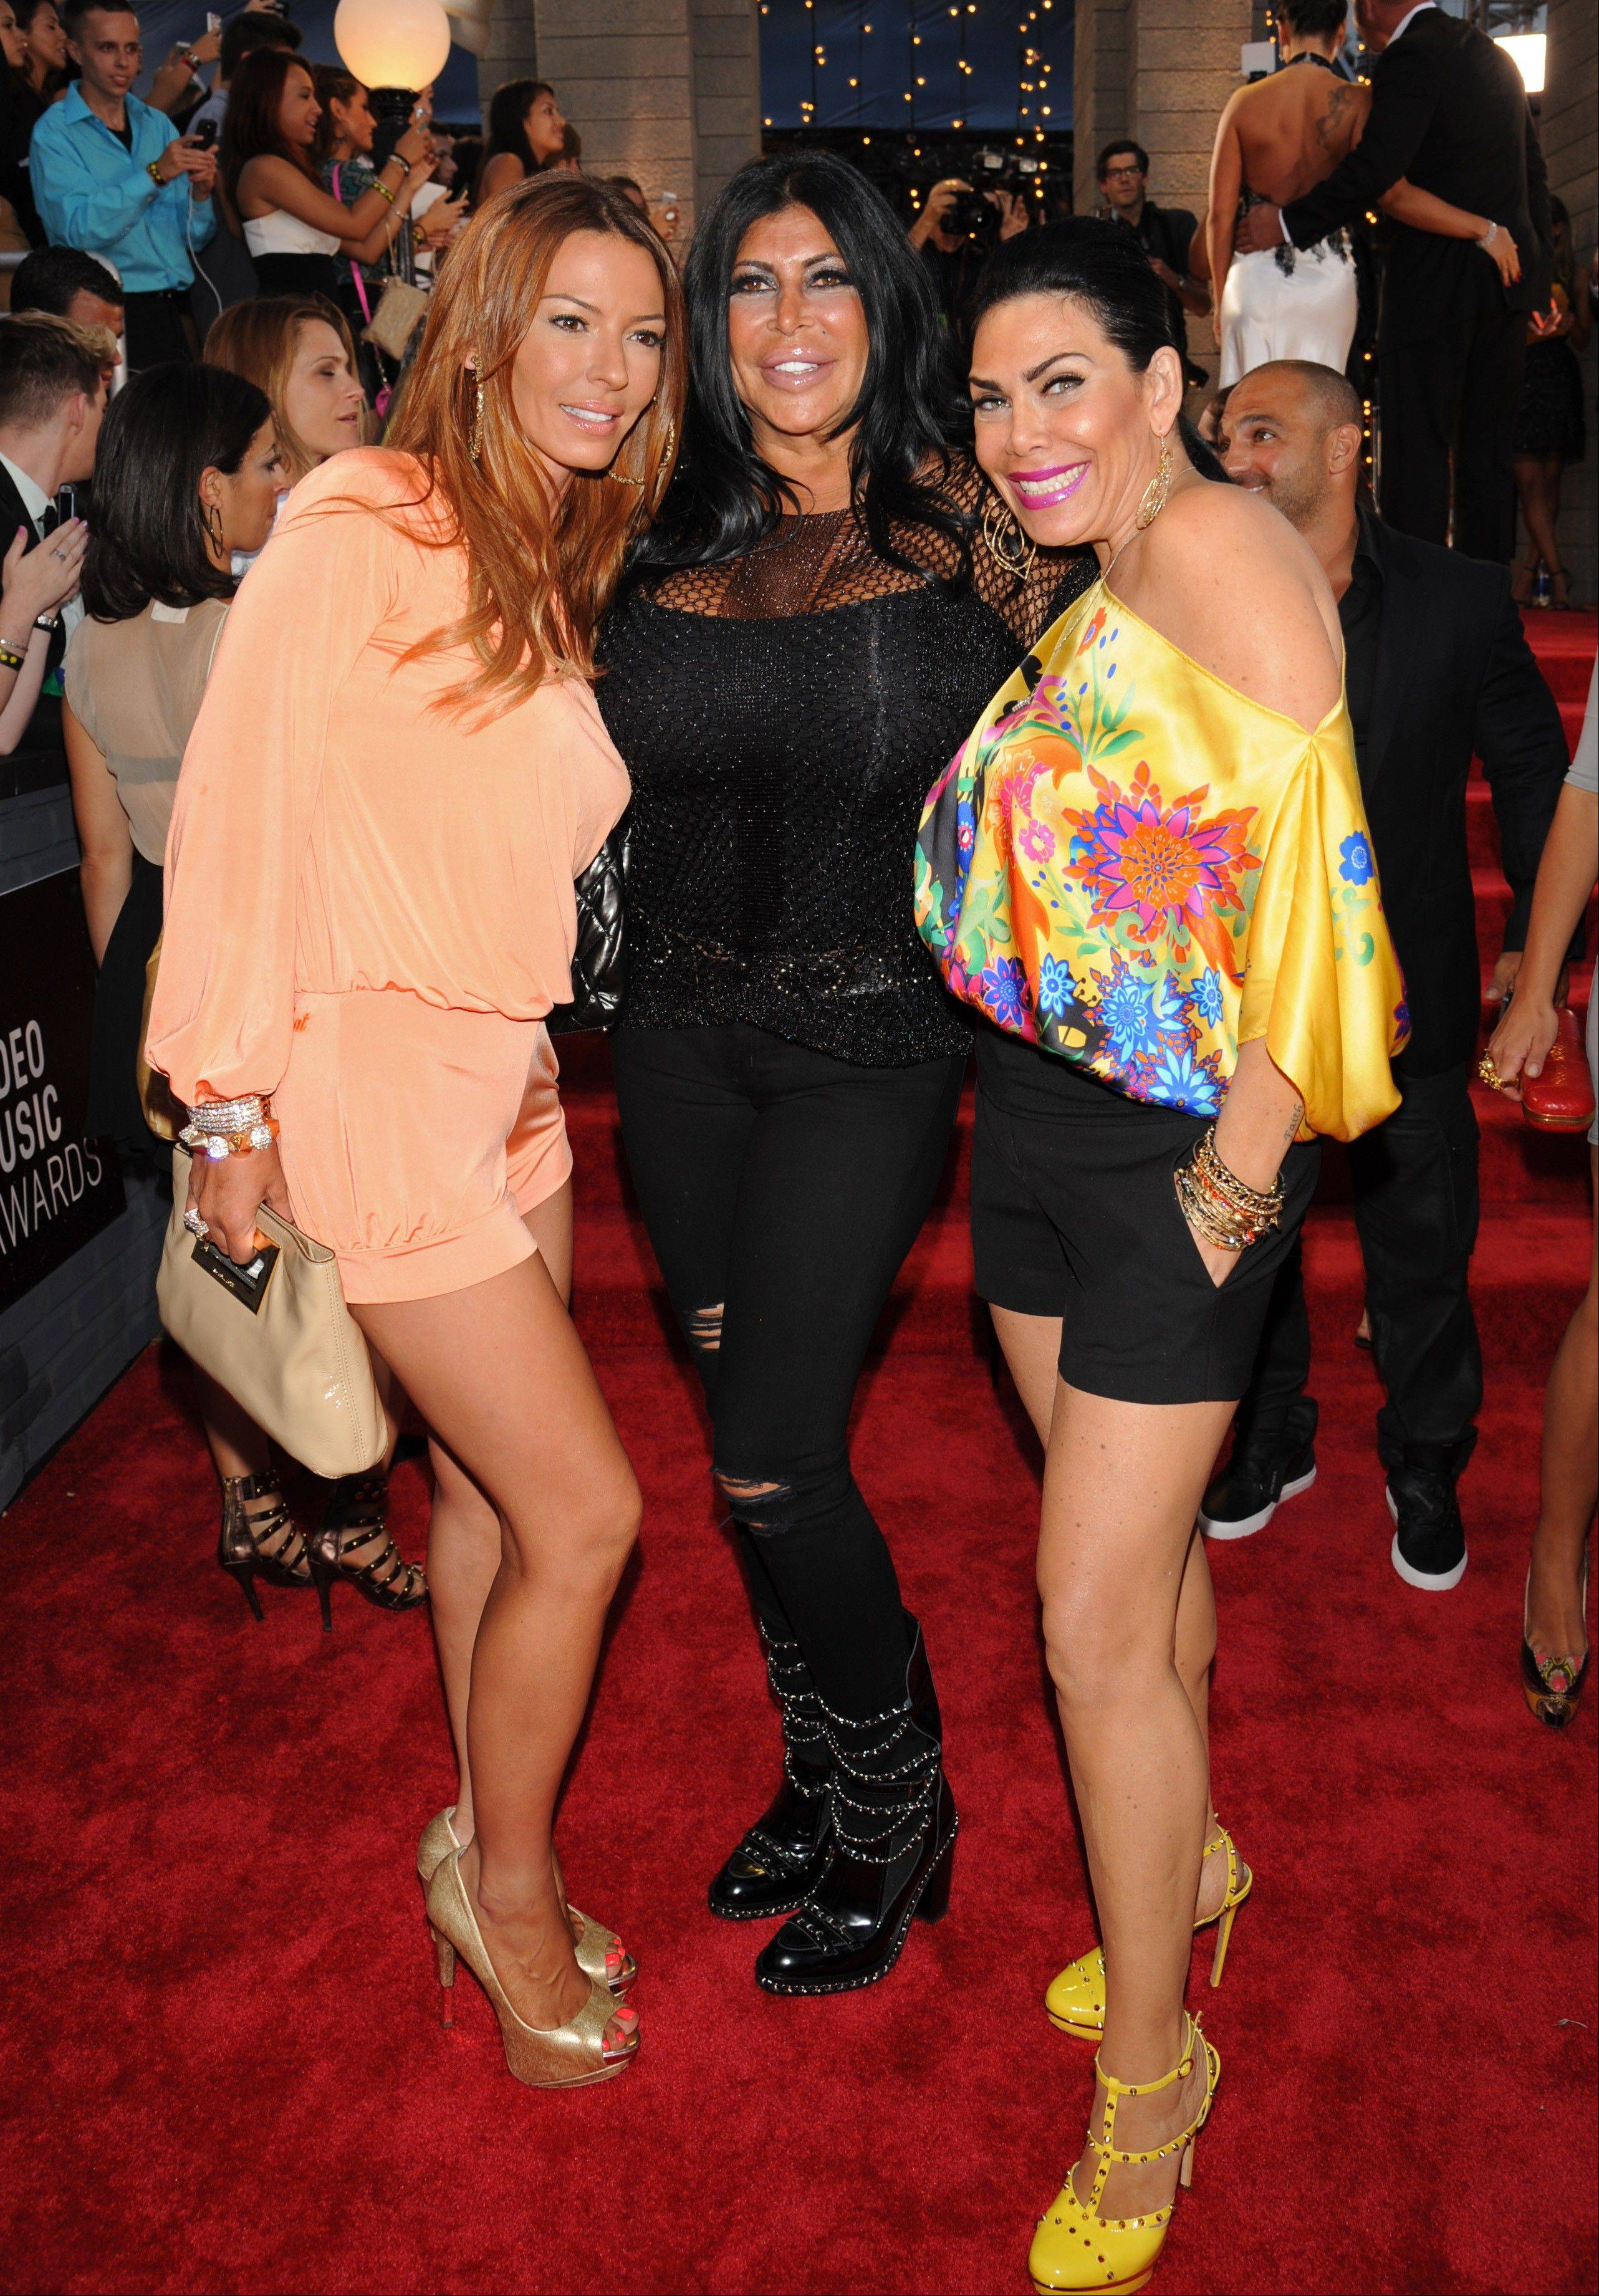 "Cast members, from left, Drita D'Avanzo, Angela Raiola and Renee Graziano from ""Mob Wives"" arrive at the MTV Video Music Awards on Sunday, Aug. 25, 2013, at the Barclays Center in the Brooklyn borough of New York."